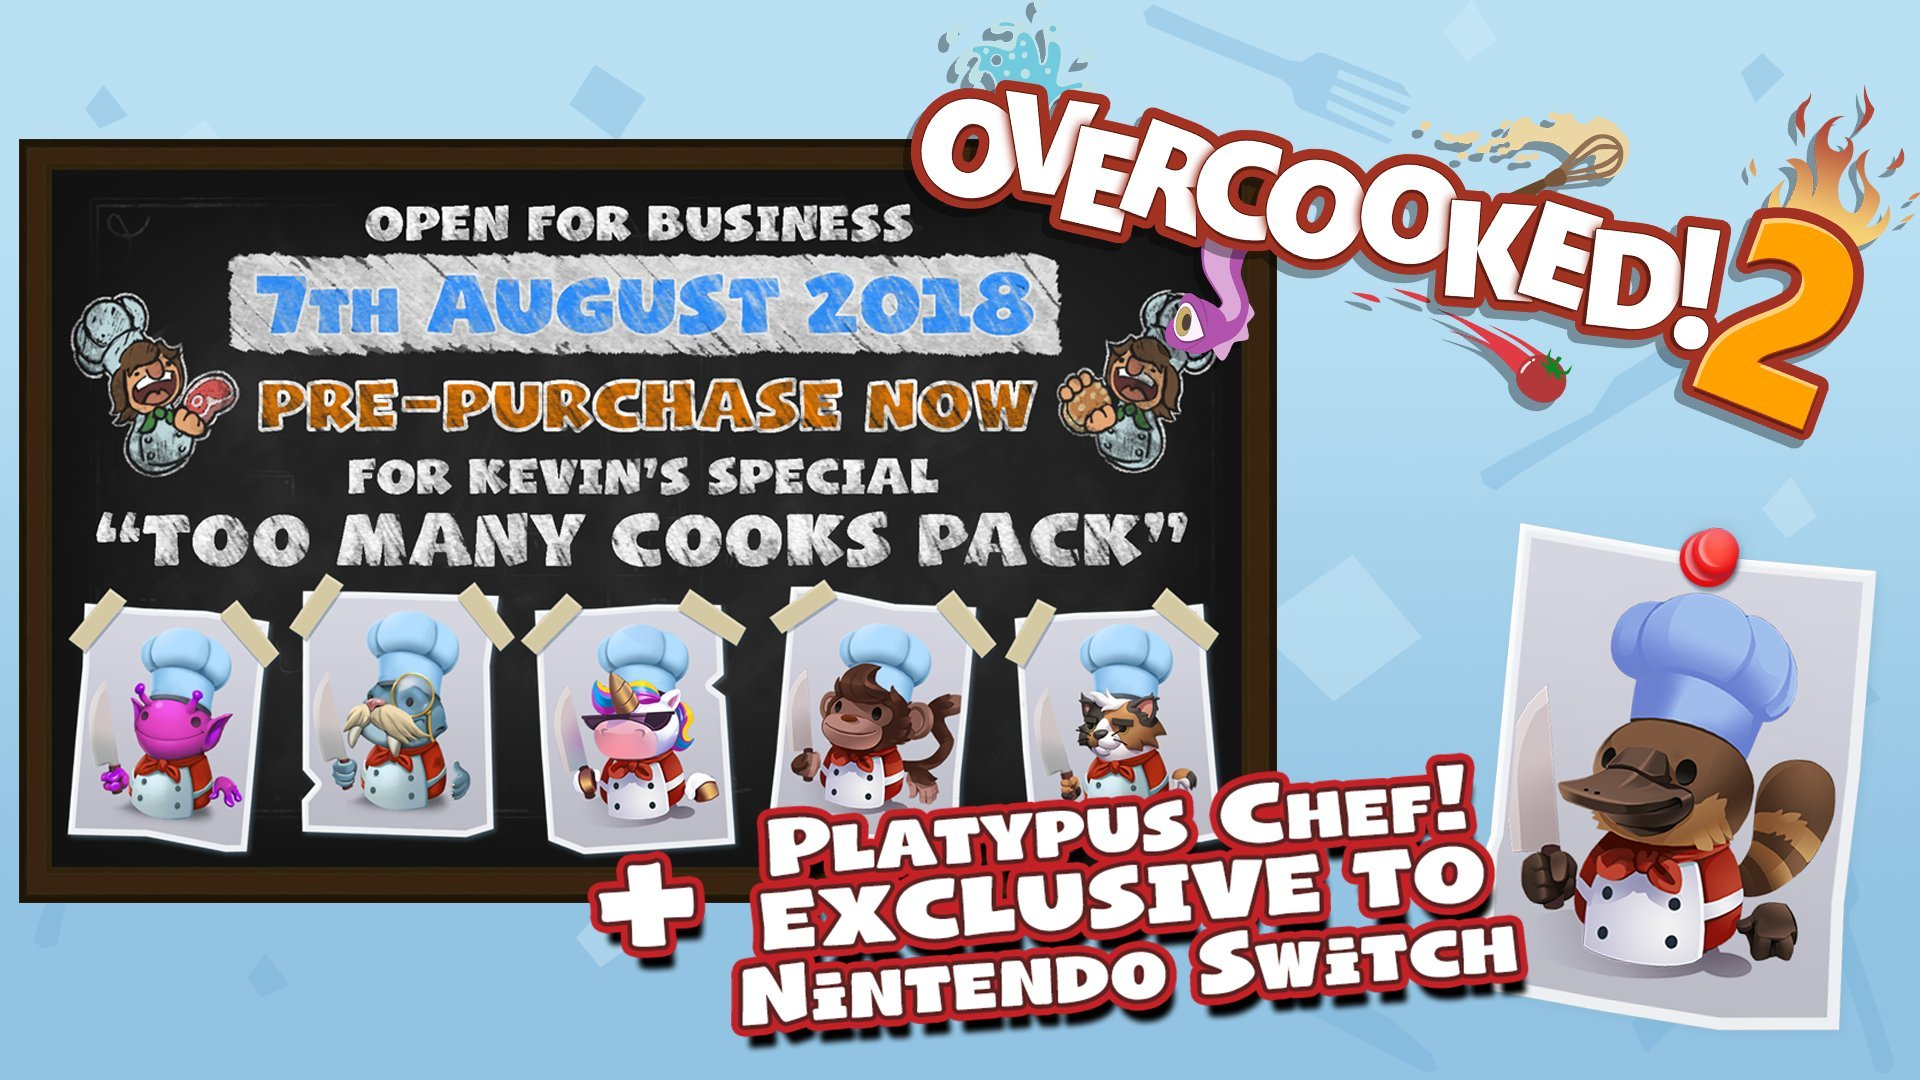 Overcooked! 2 - Nintendo Switch by Sold Out (Image #2)